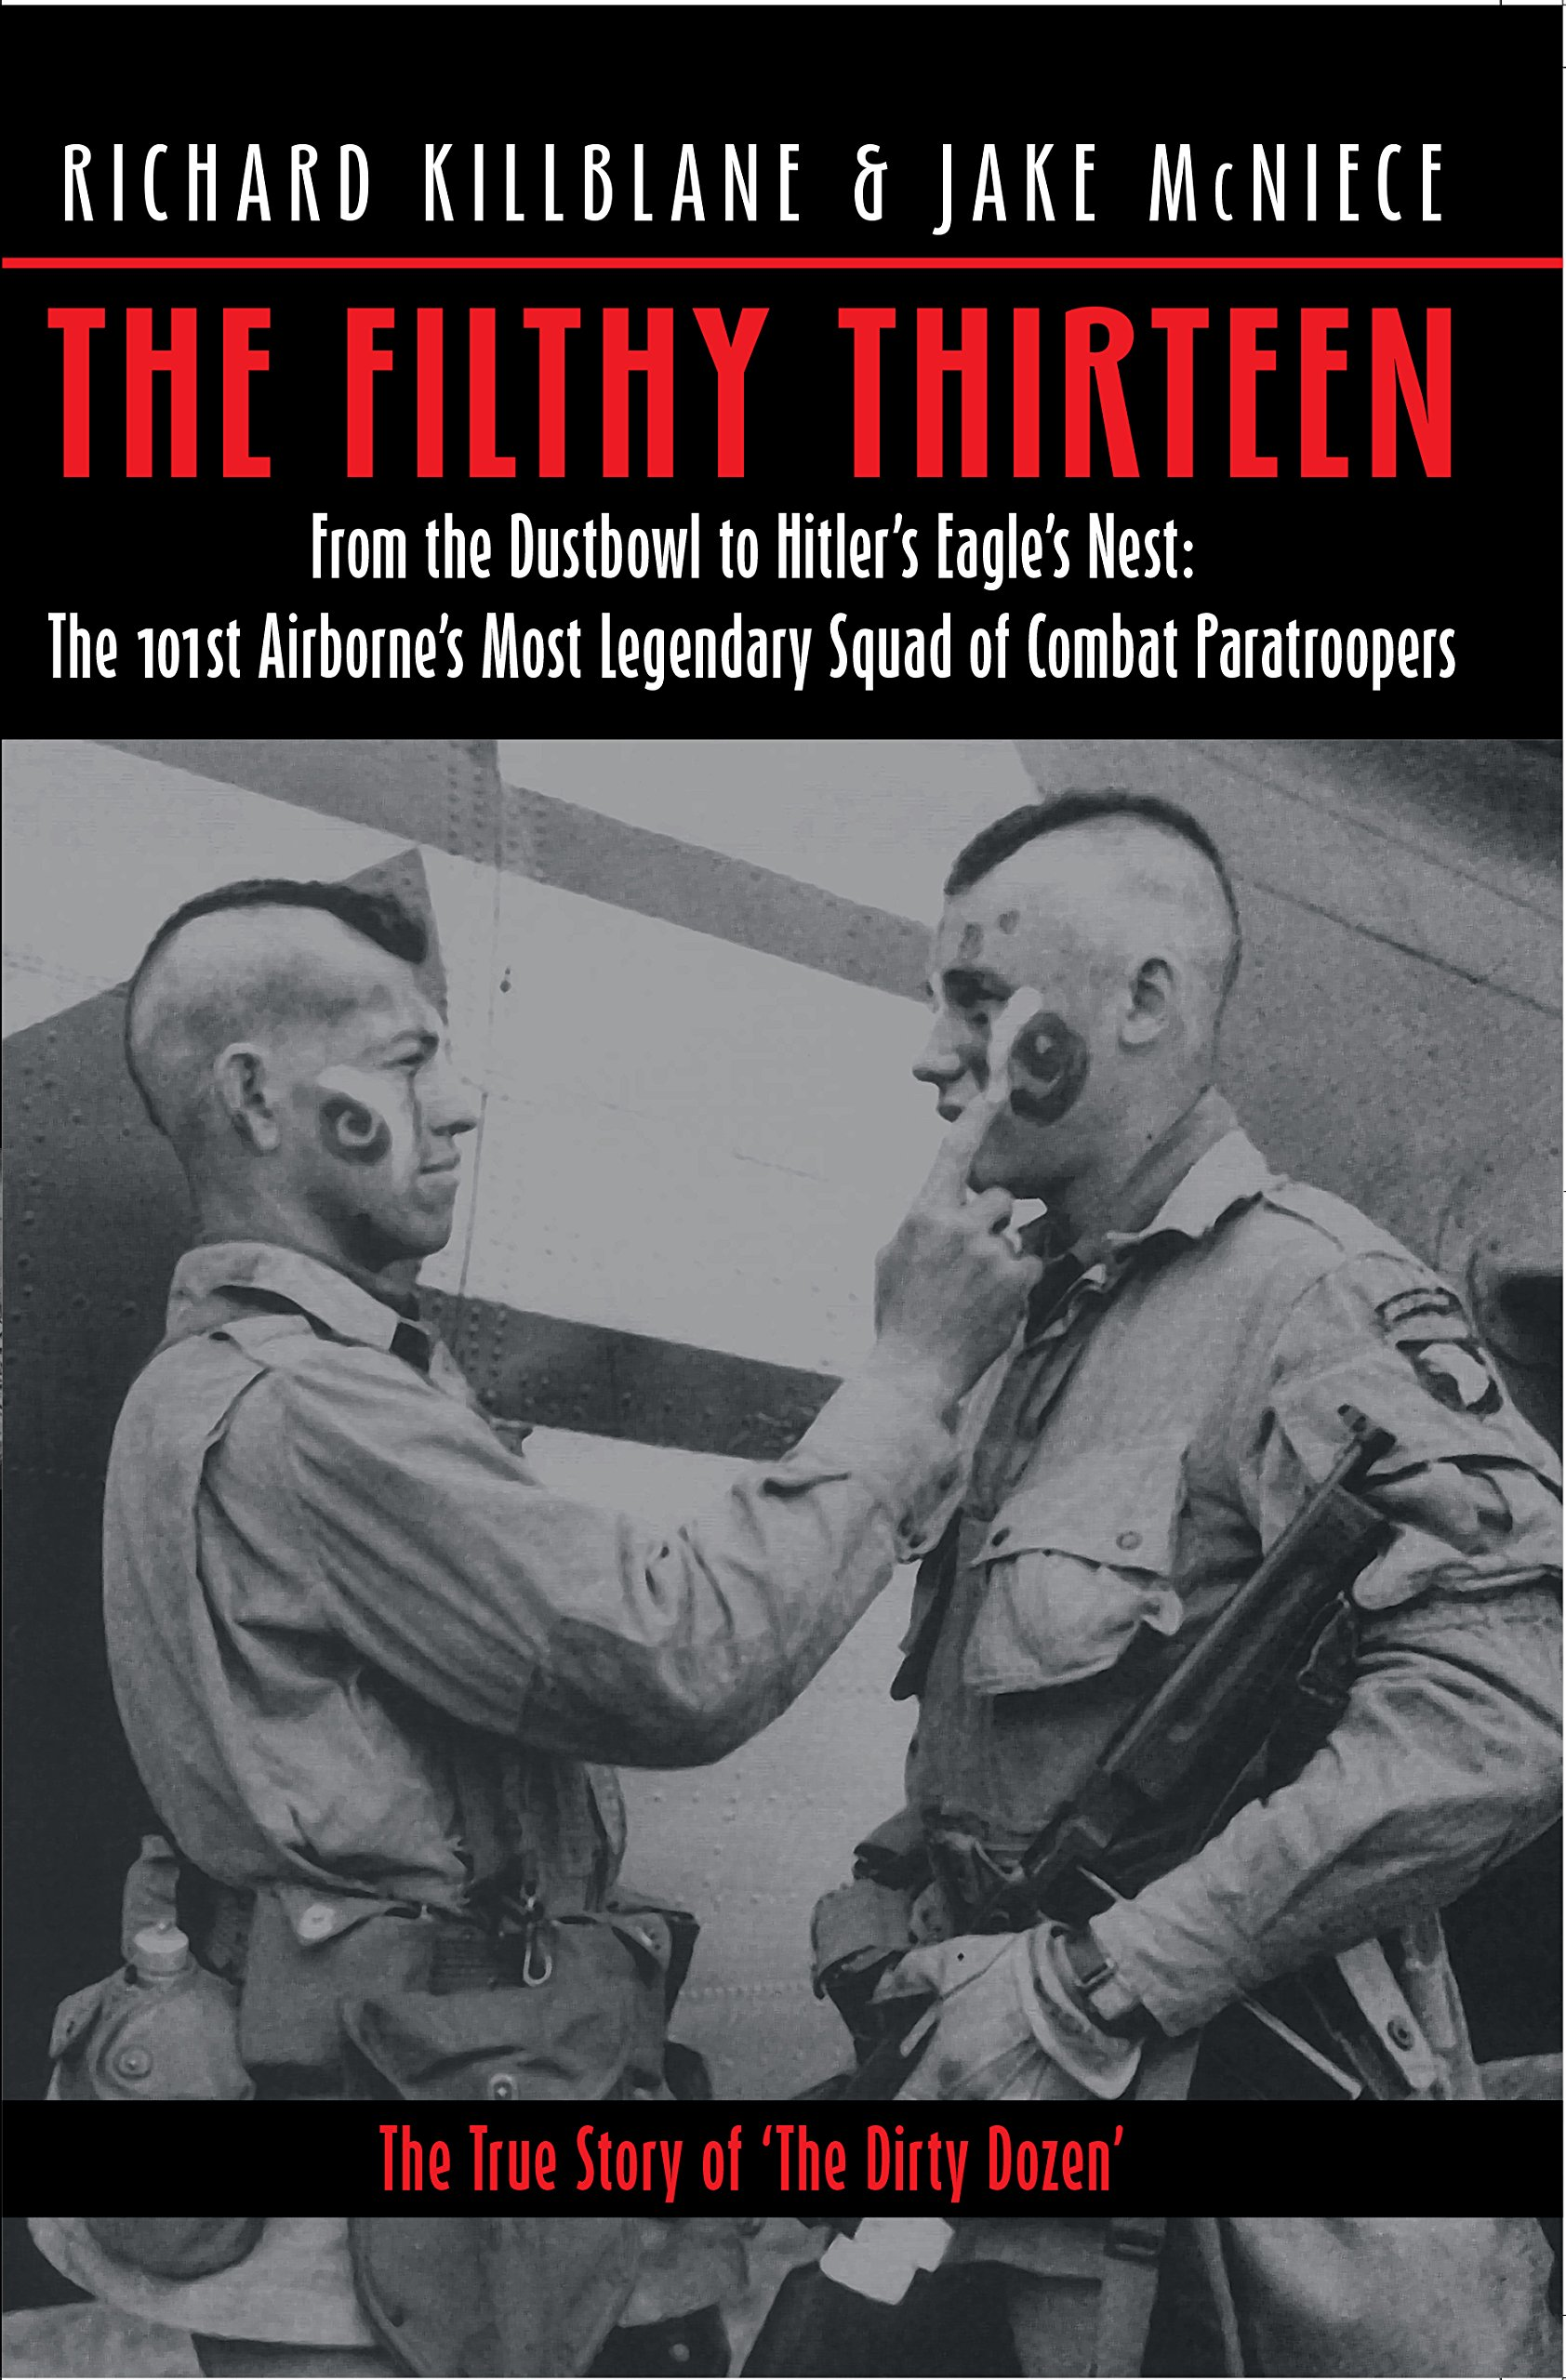 Download The Filthy Thirteen: From the Dustbowl to Hitler's Eagle's Nest - The True Story of the 101st Airborne's Most Legendary Squad of Combat Paratroopers pdf epub